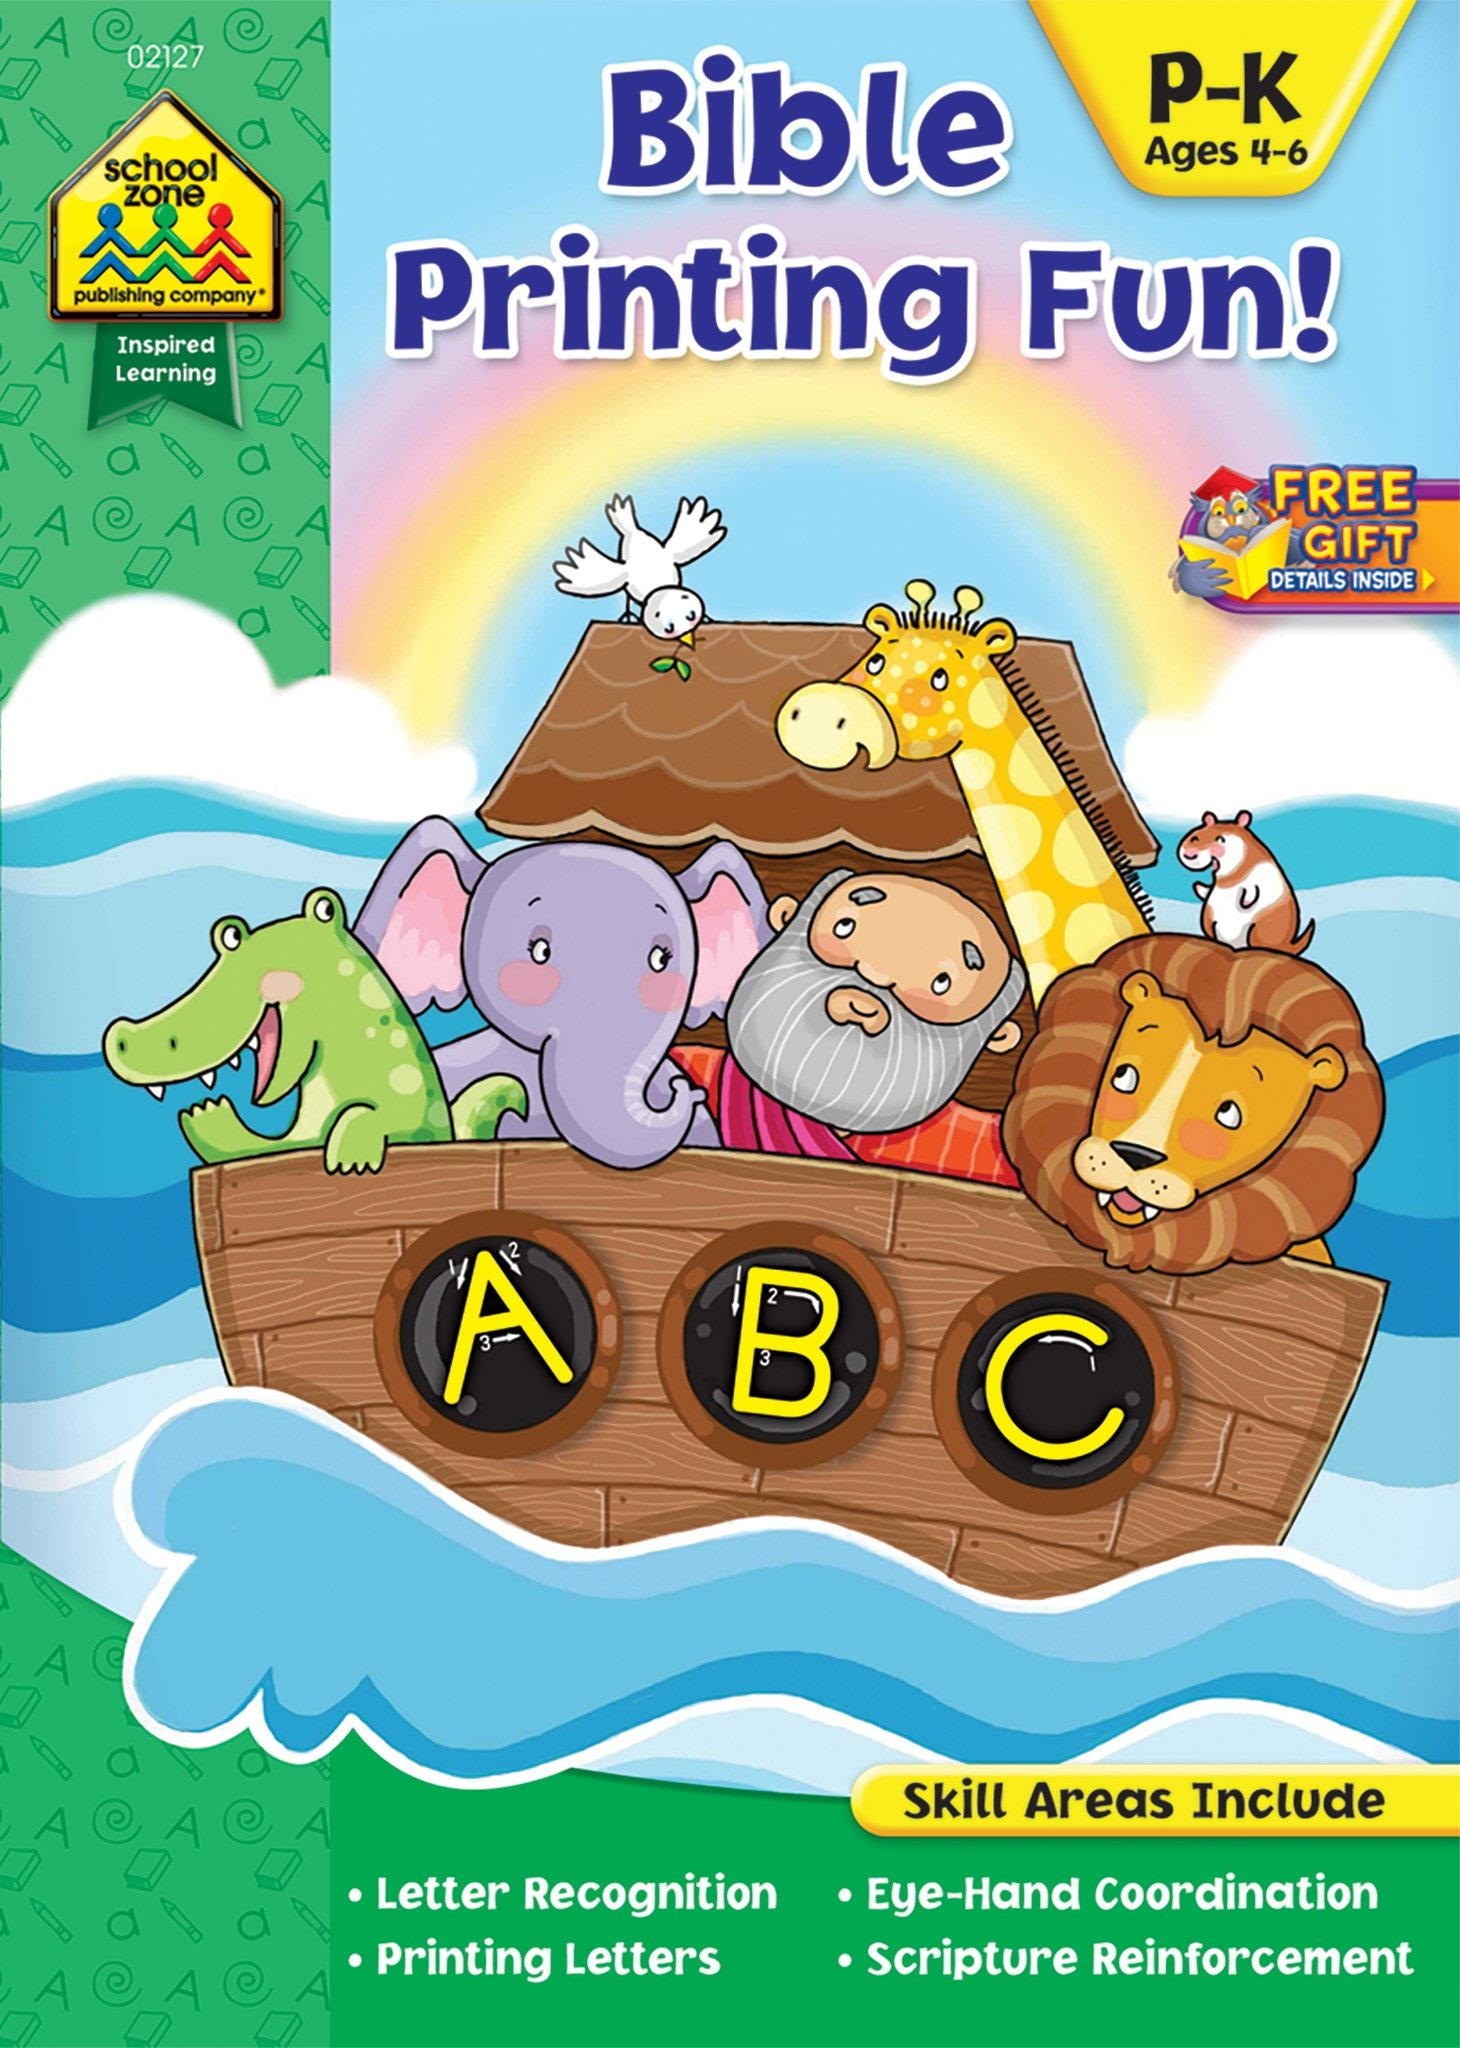 SCHOOL ZONE - Bible Printing Fun! Workbook, Preschool thru Kindergarten, Ages 4 to 6, Letter Recognition, Printing Letters, Scripture Reinforcement, ... and More! (Inspired Learning Workbook)